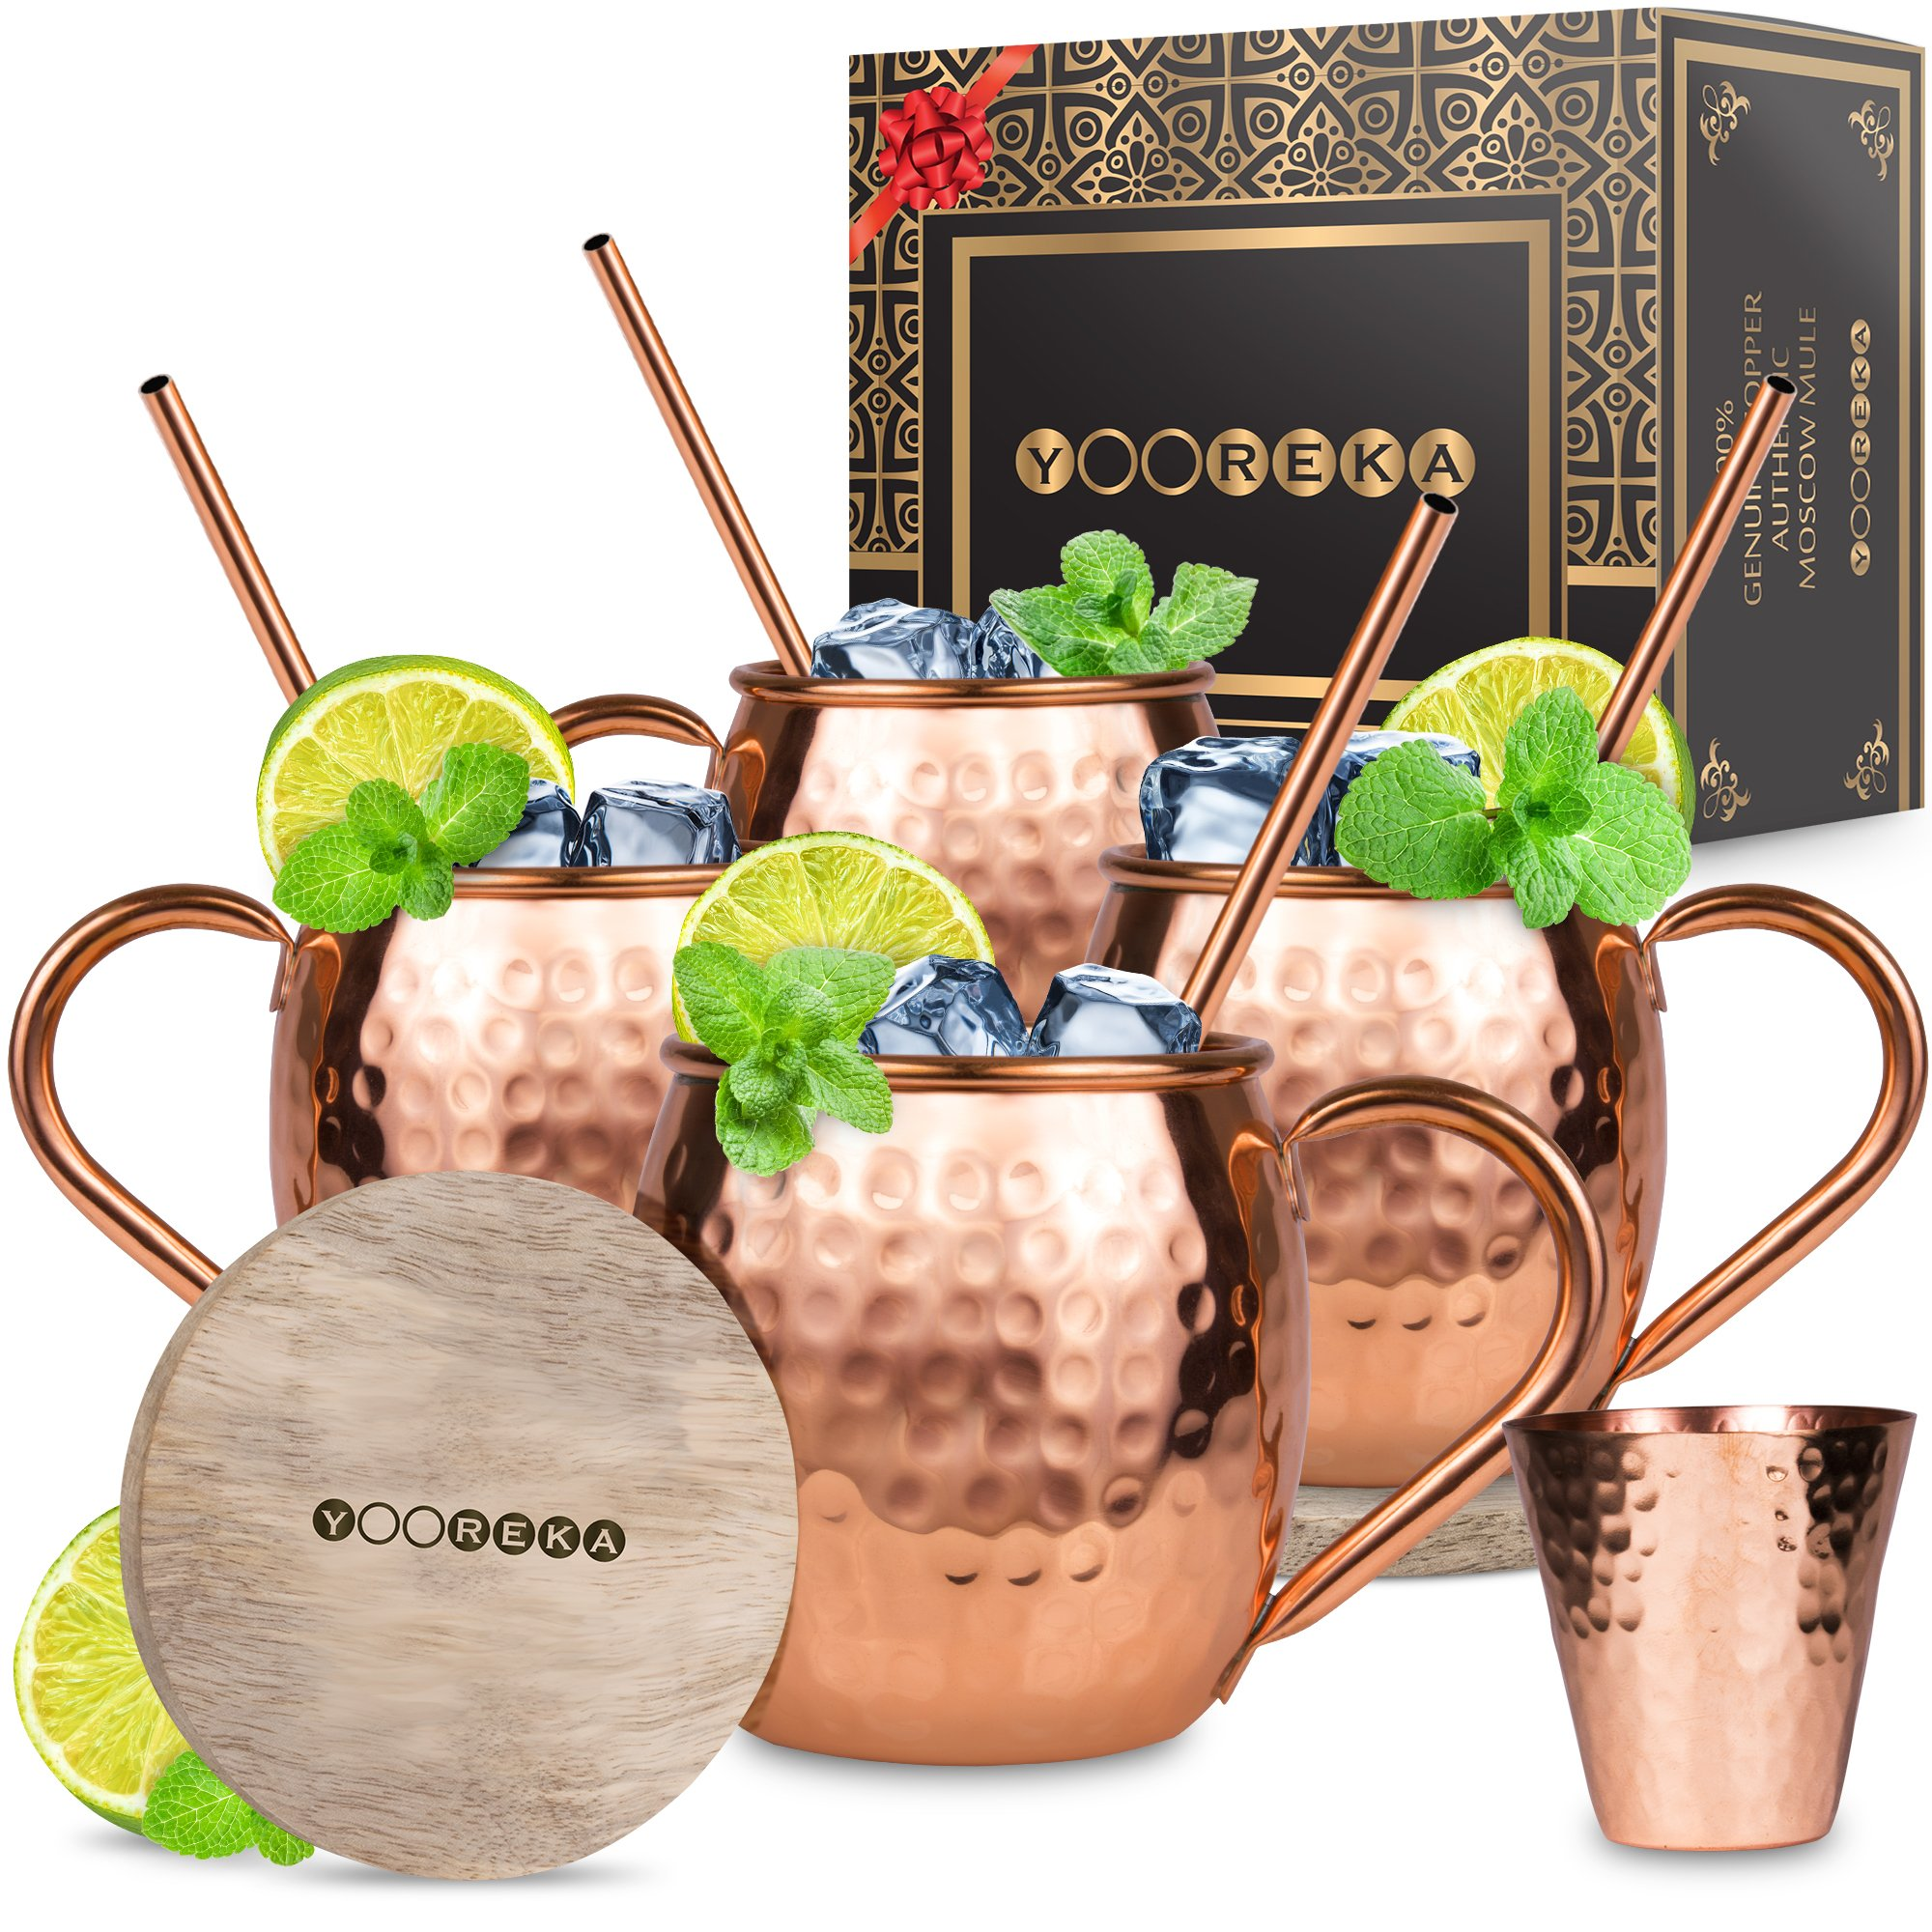 Moscow Mule Copper Mugs Set : 4 16 oz. Solid Genuine Copper Mugs Handmade in India, 4 Straws, 4 Wood Coasters, & Shot Glass : Comes in Elegant Gift Box, by Yooreka